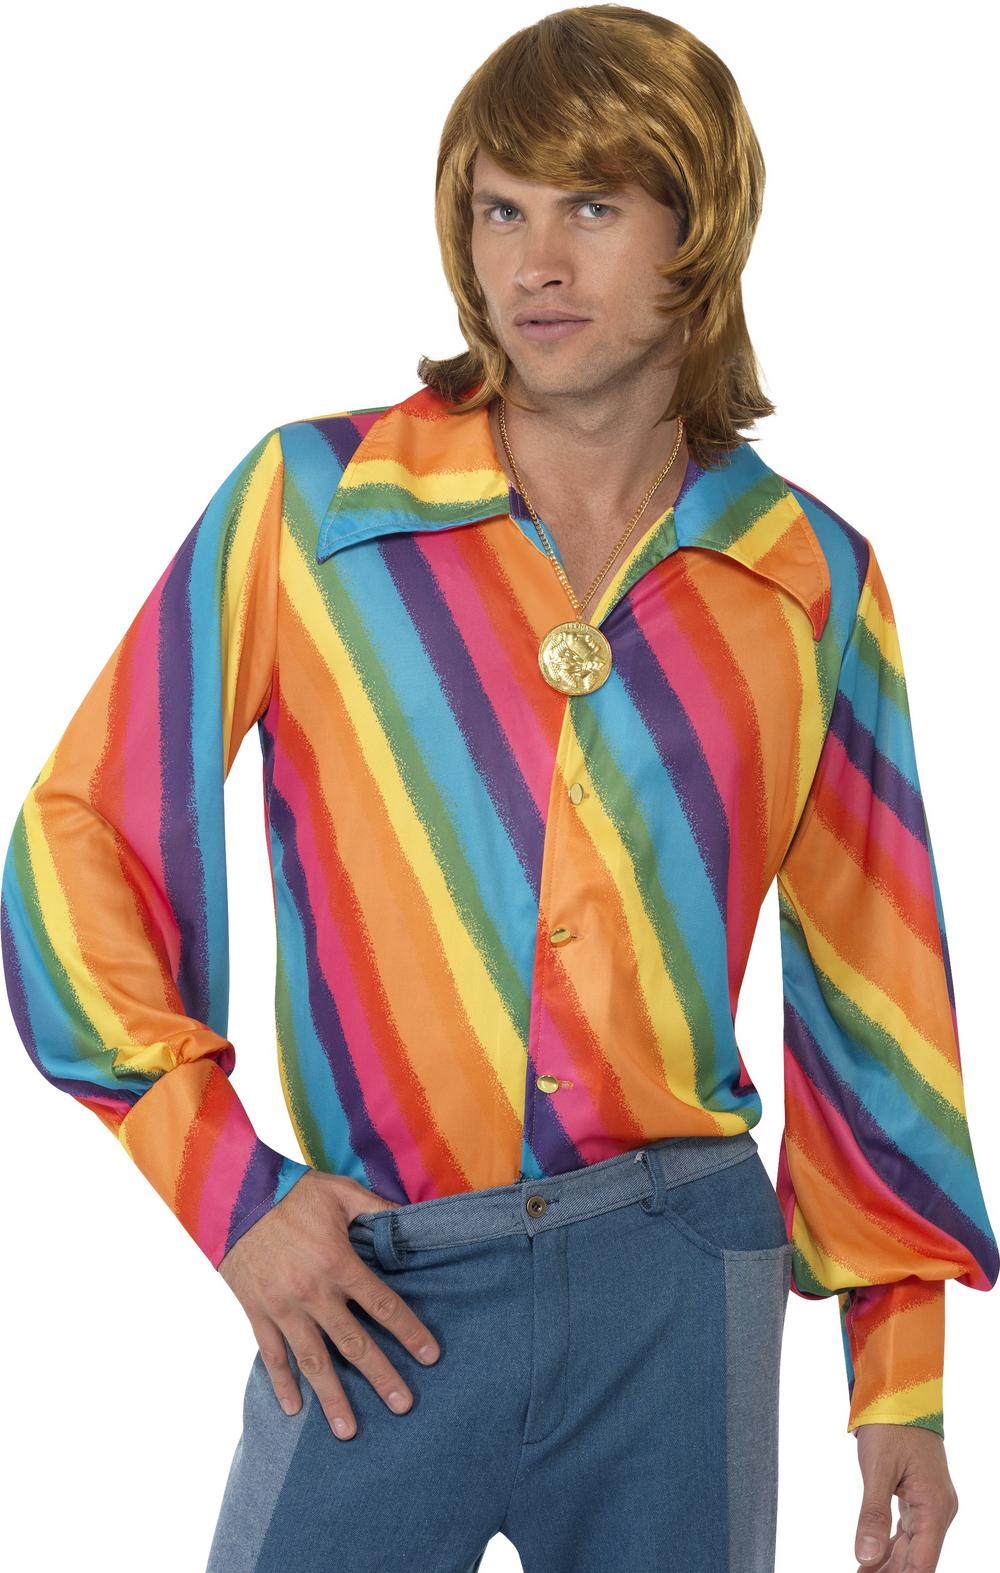 1970s Rainbow Colour Shirt Mens Costume Accessory